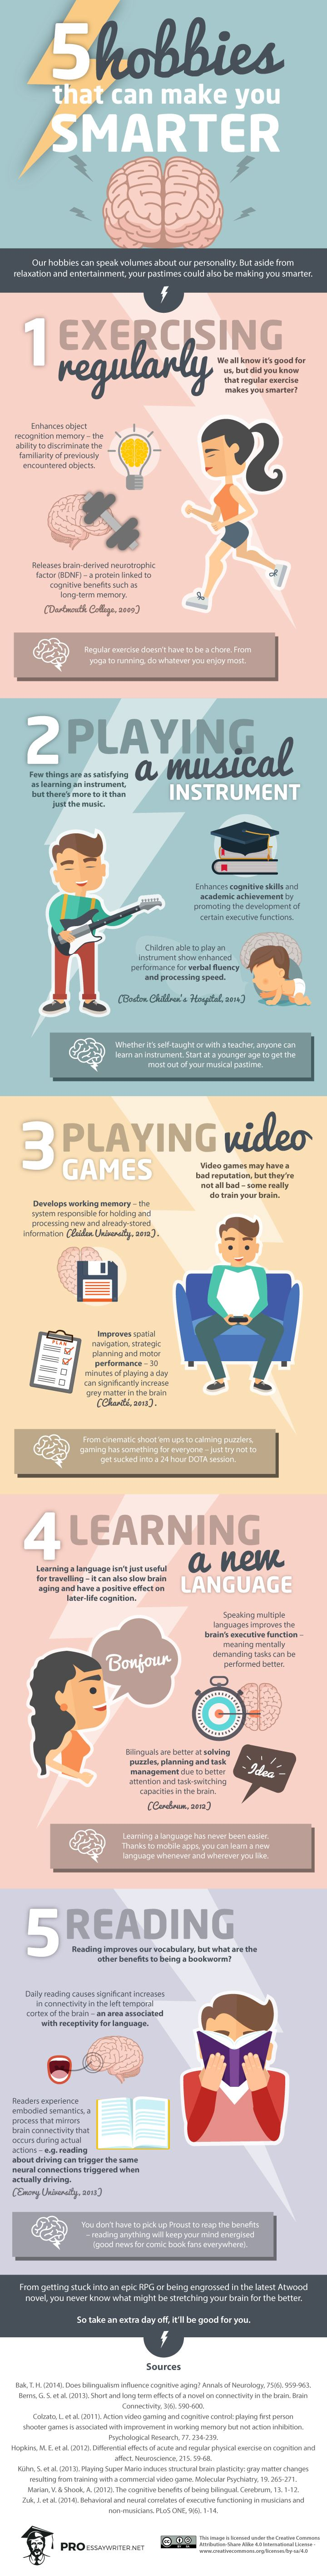 5 Hobbies that Can Make you Smarter #infographic